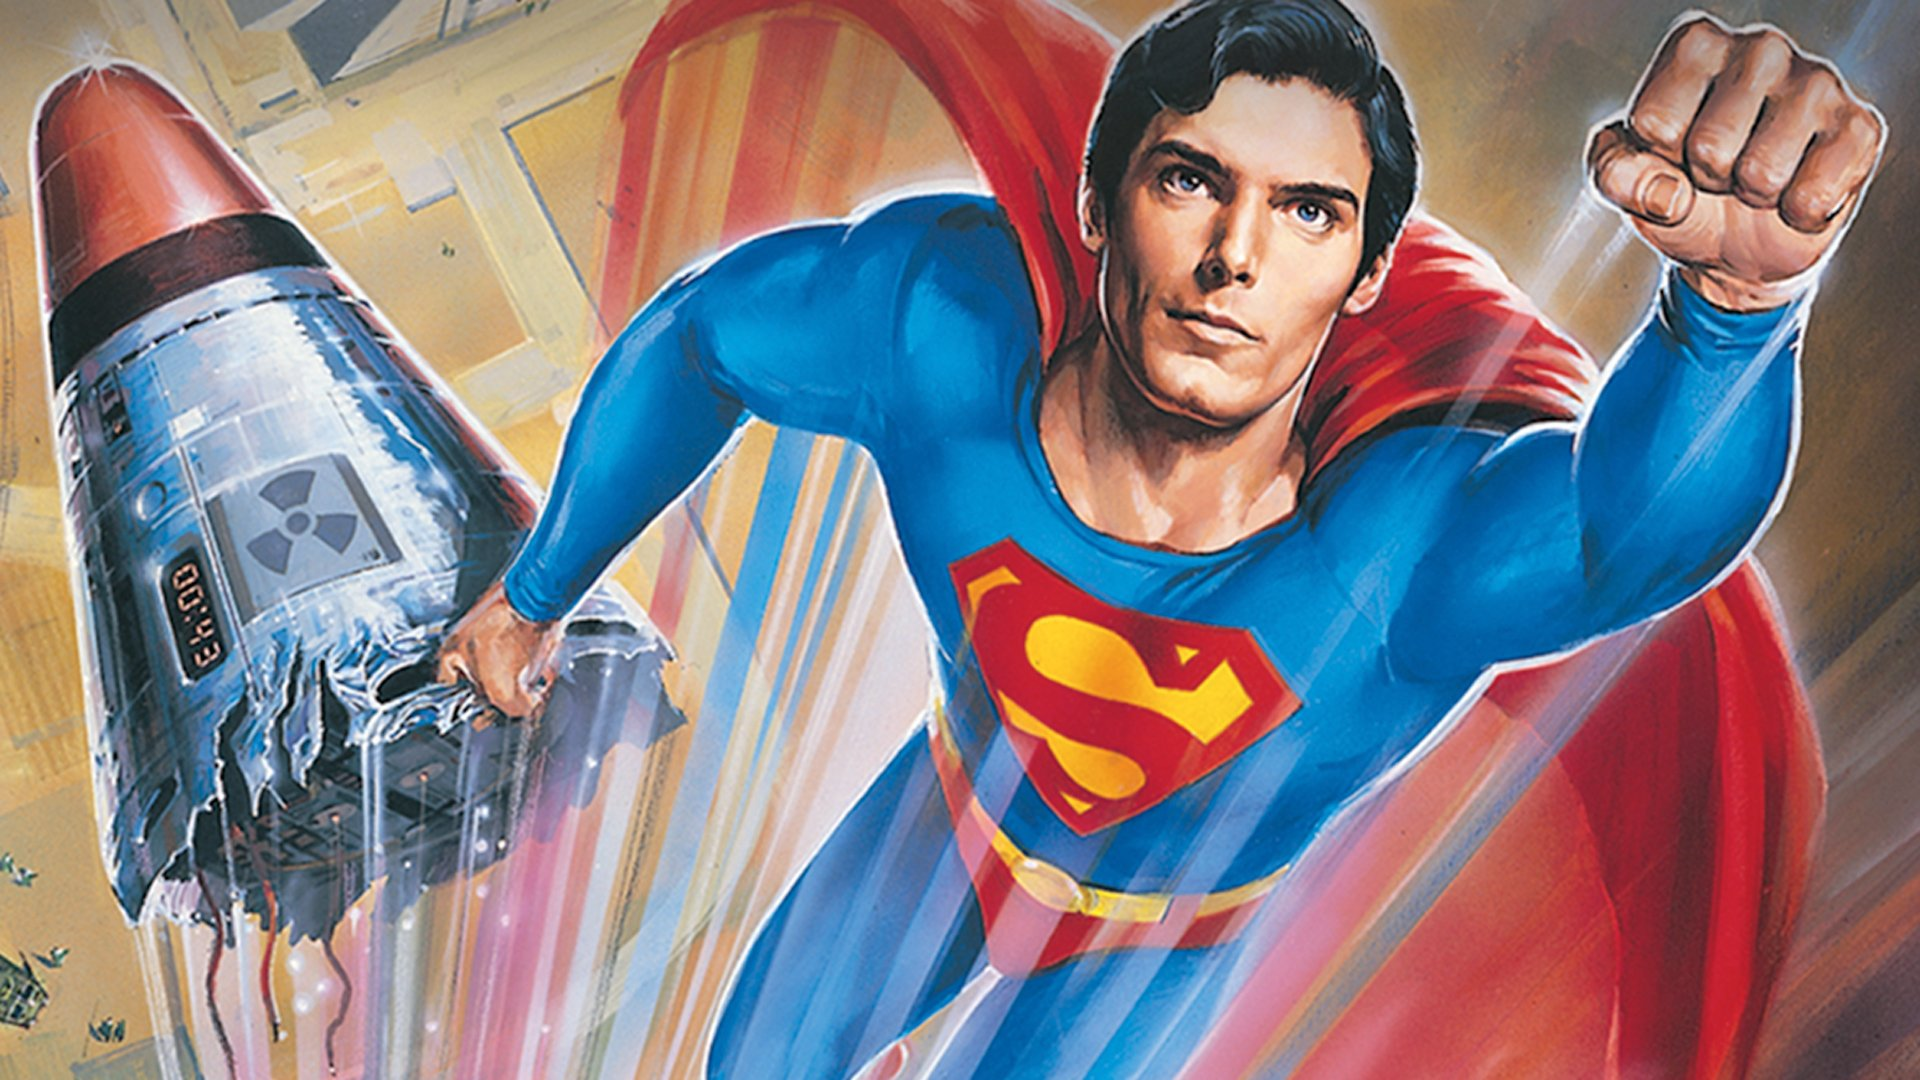 Superman IV: The Quest for Peace | Sky.com